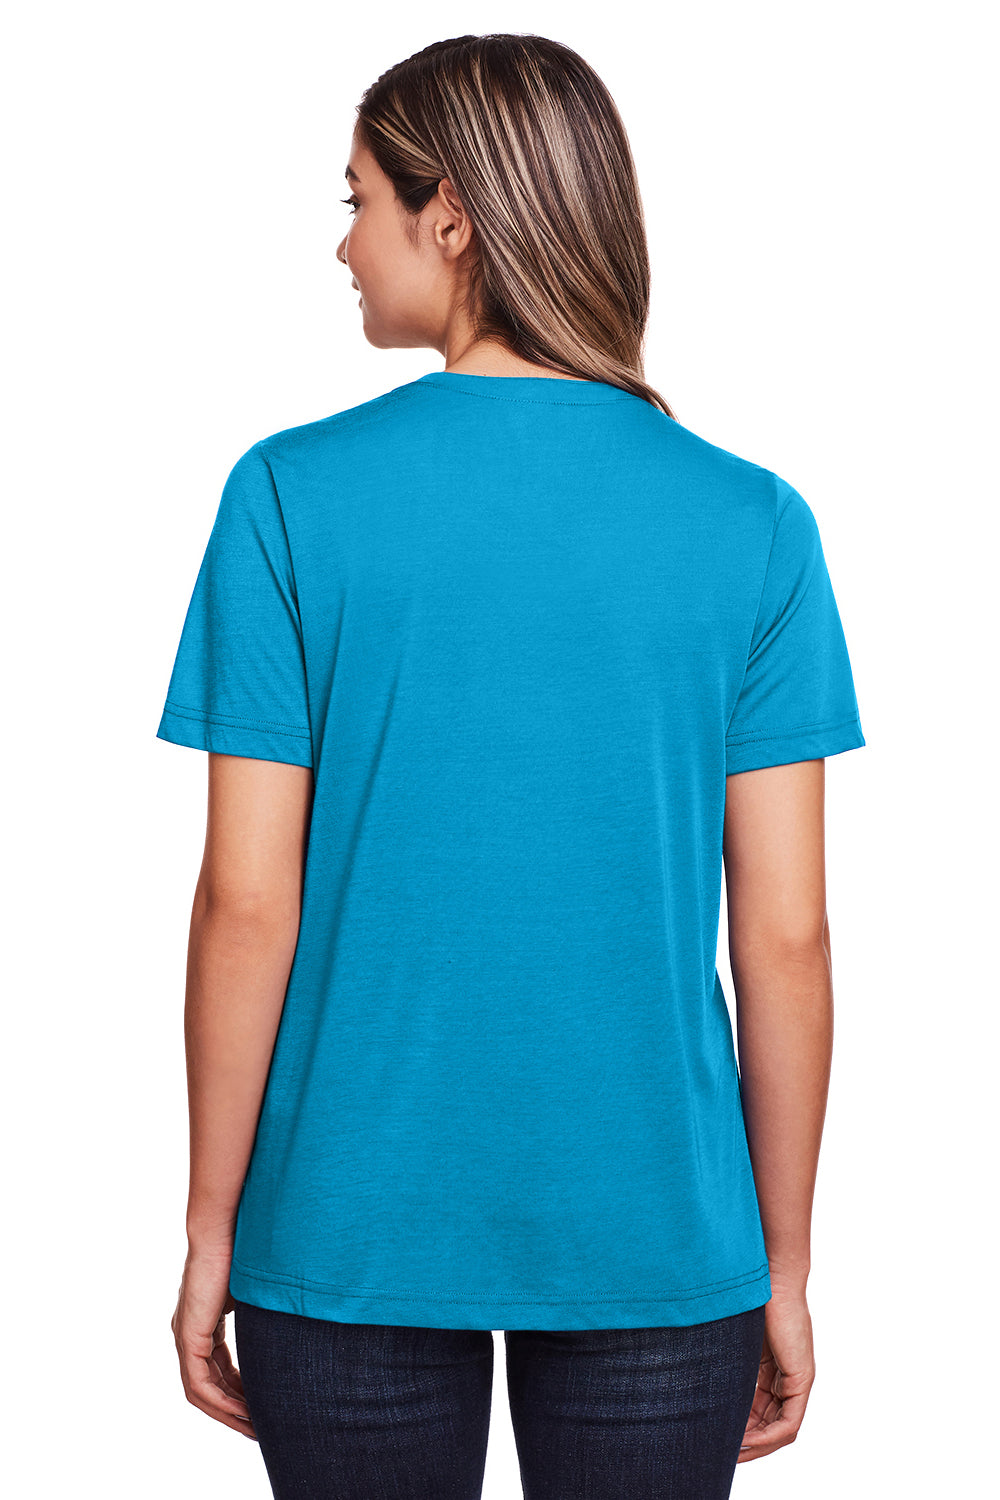 Core 365 CE111W Womens Fusion ChromaSoft Performance Moisture Wicking Short Sleeve Scoop Neck T-Shirt Electric Blue Back